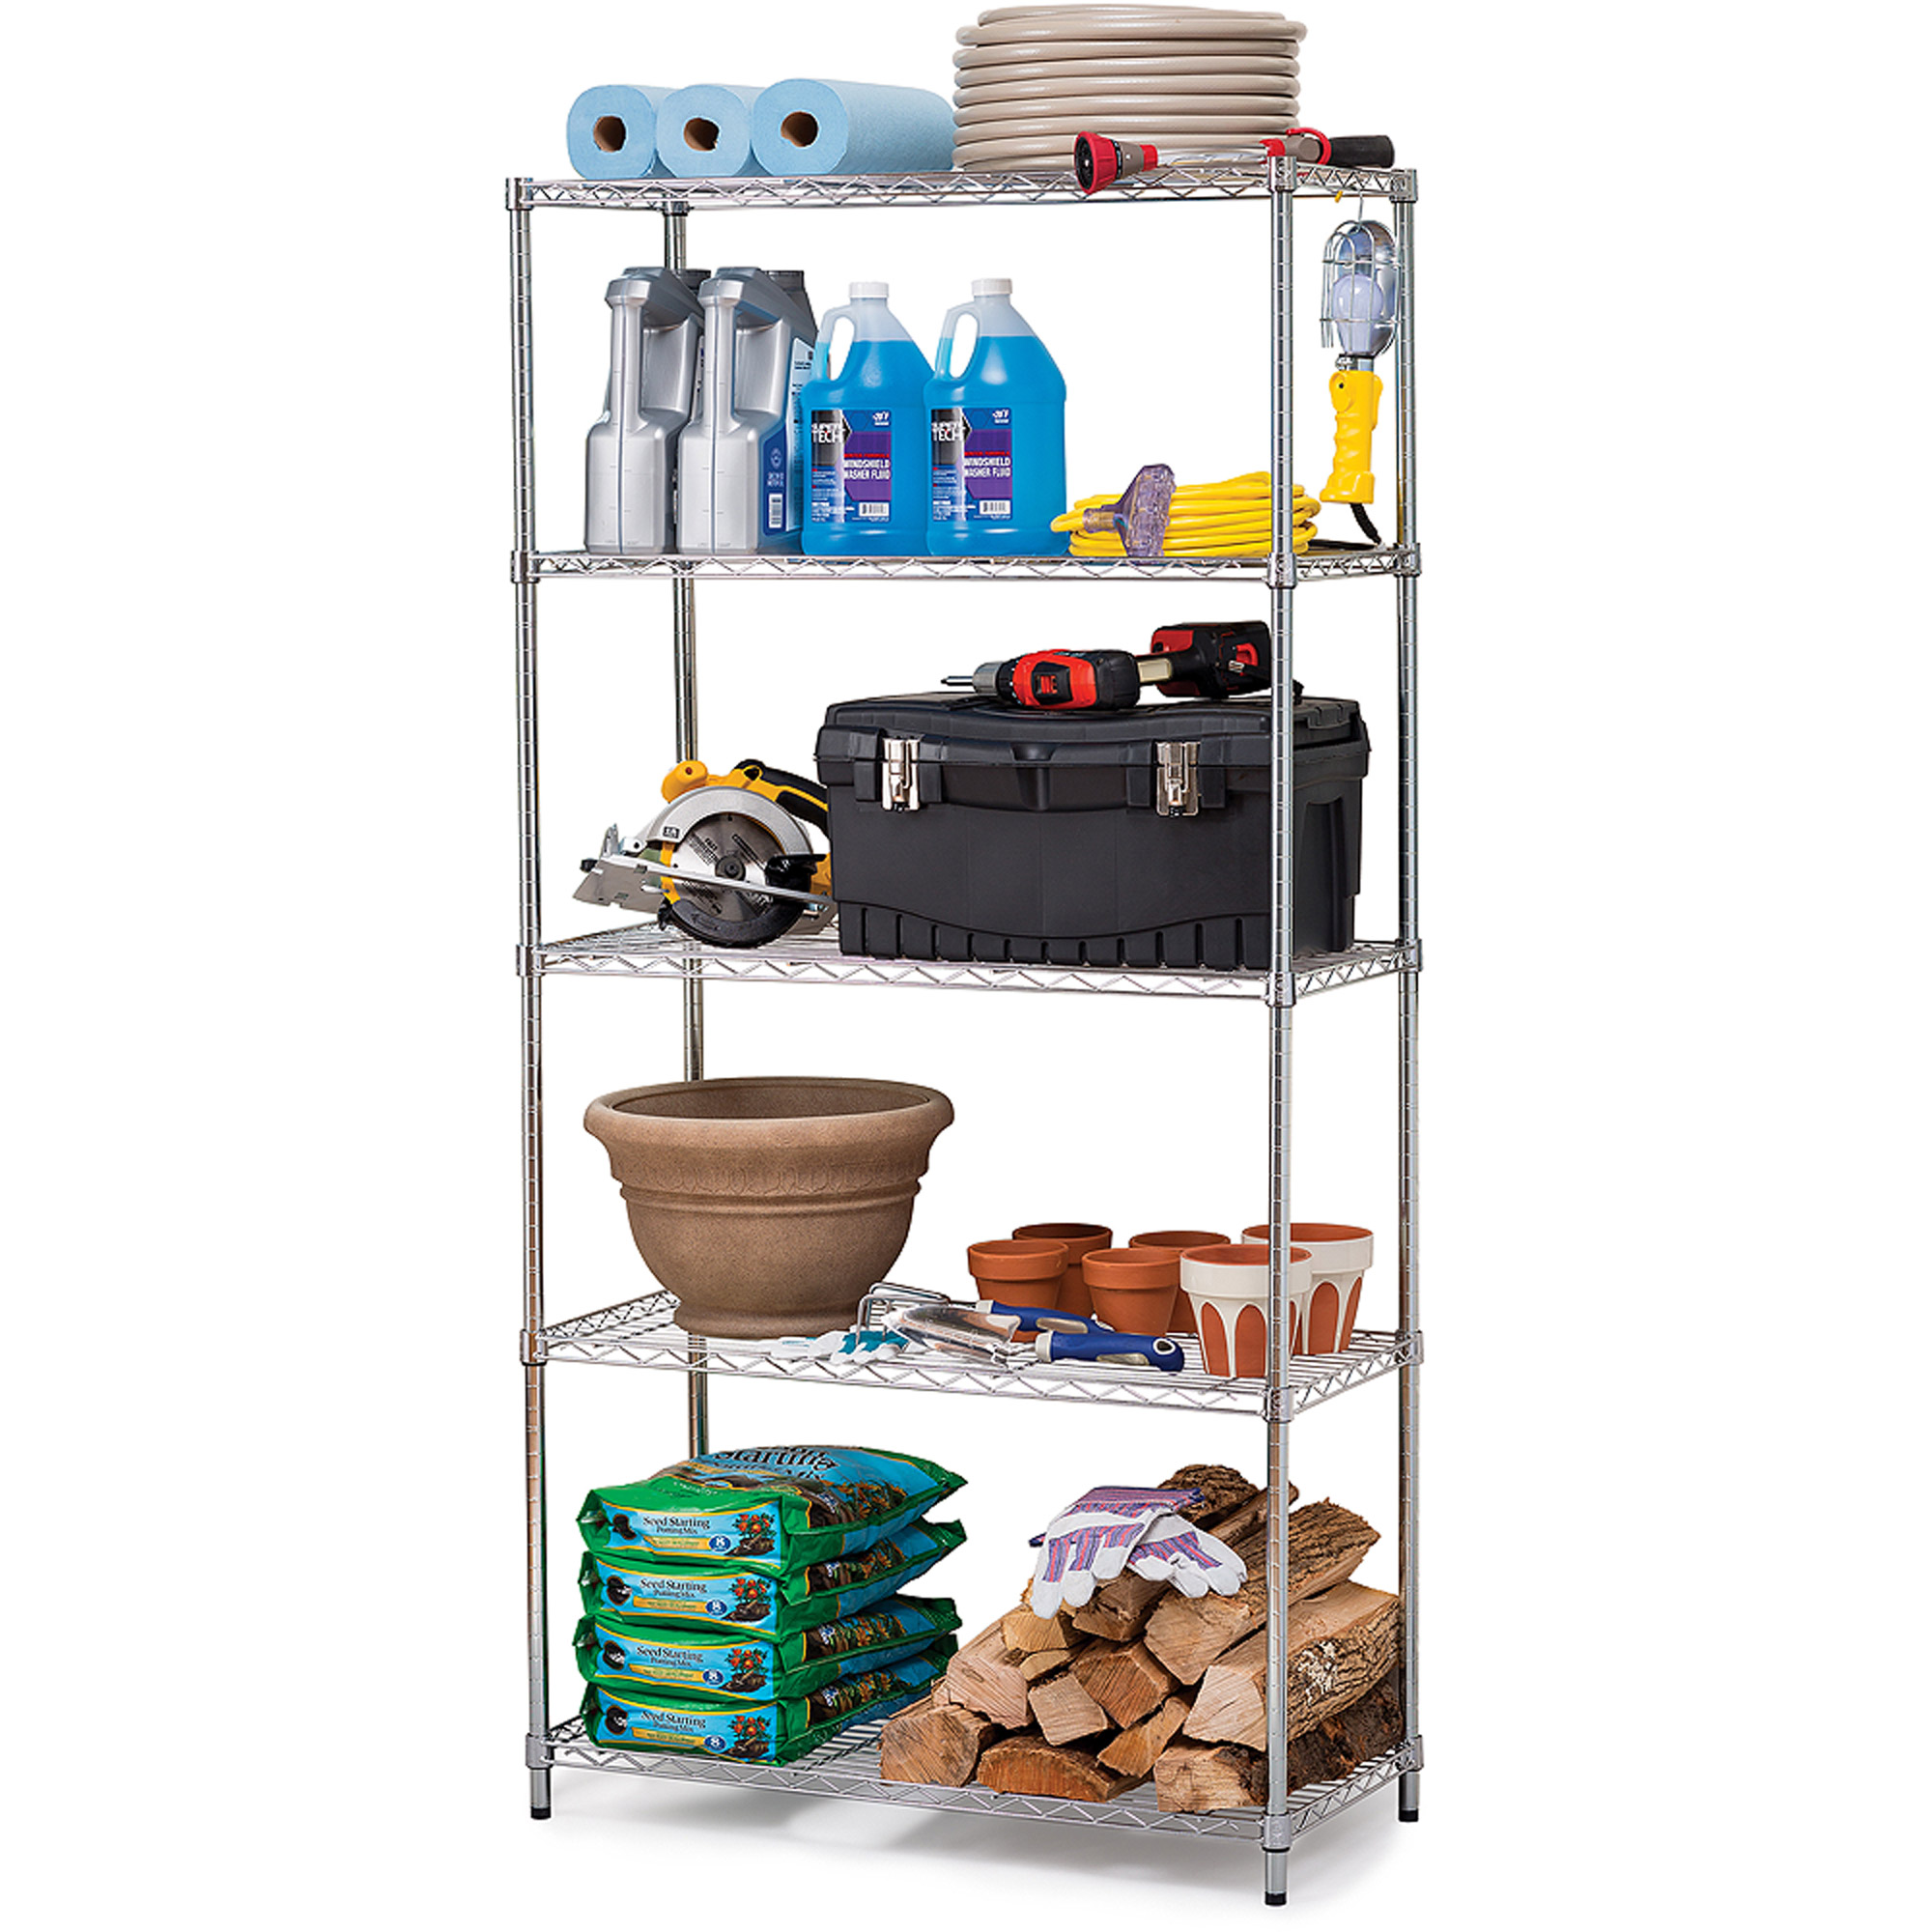 Shelves in Walmart | Locker Shelves Walmart | Walmart Shelving